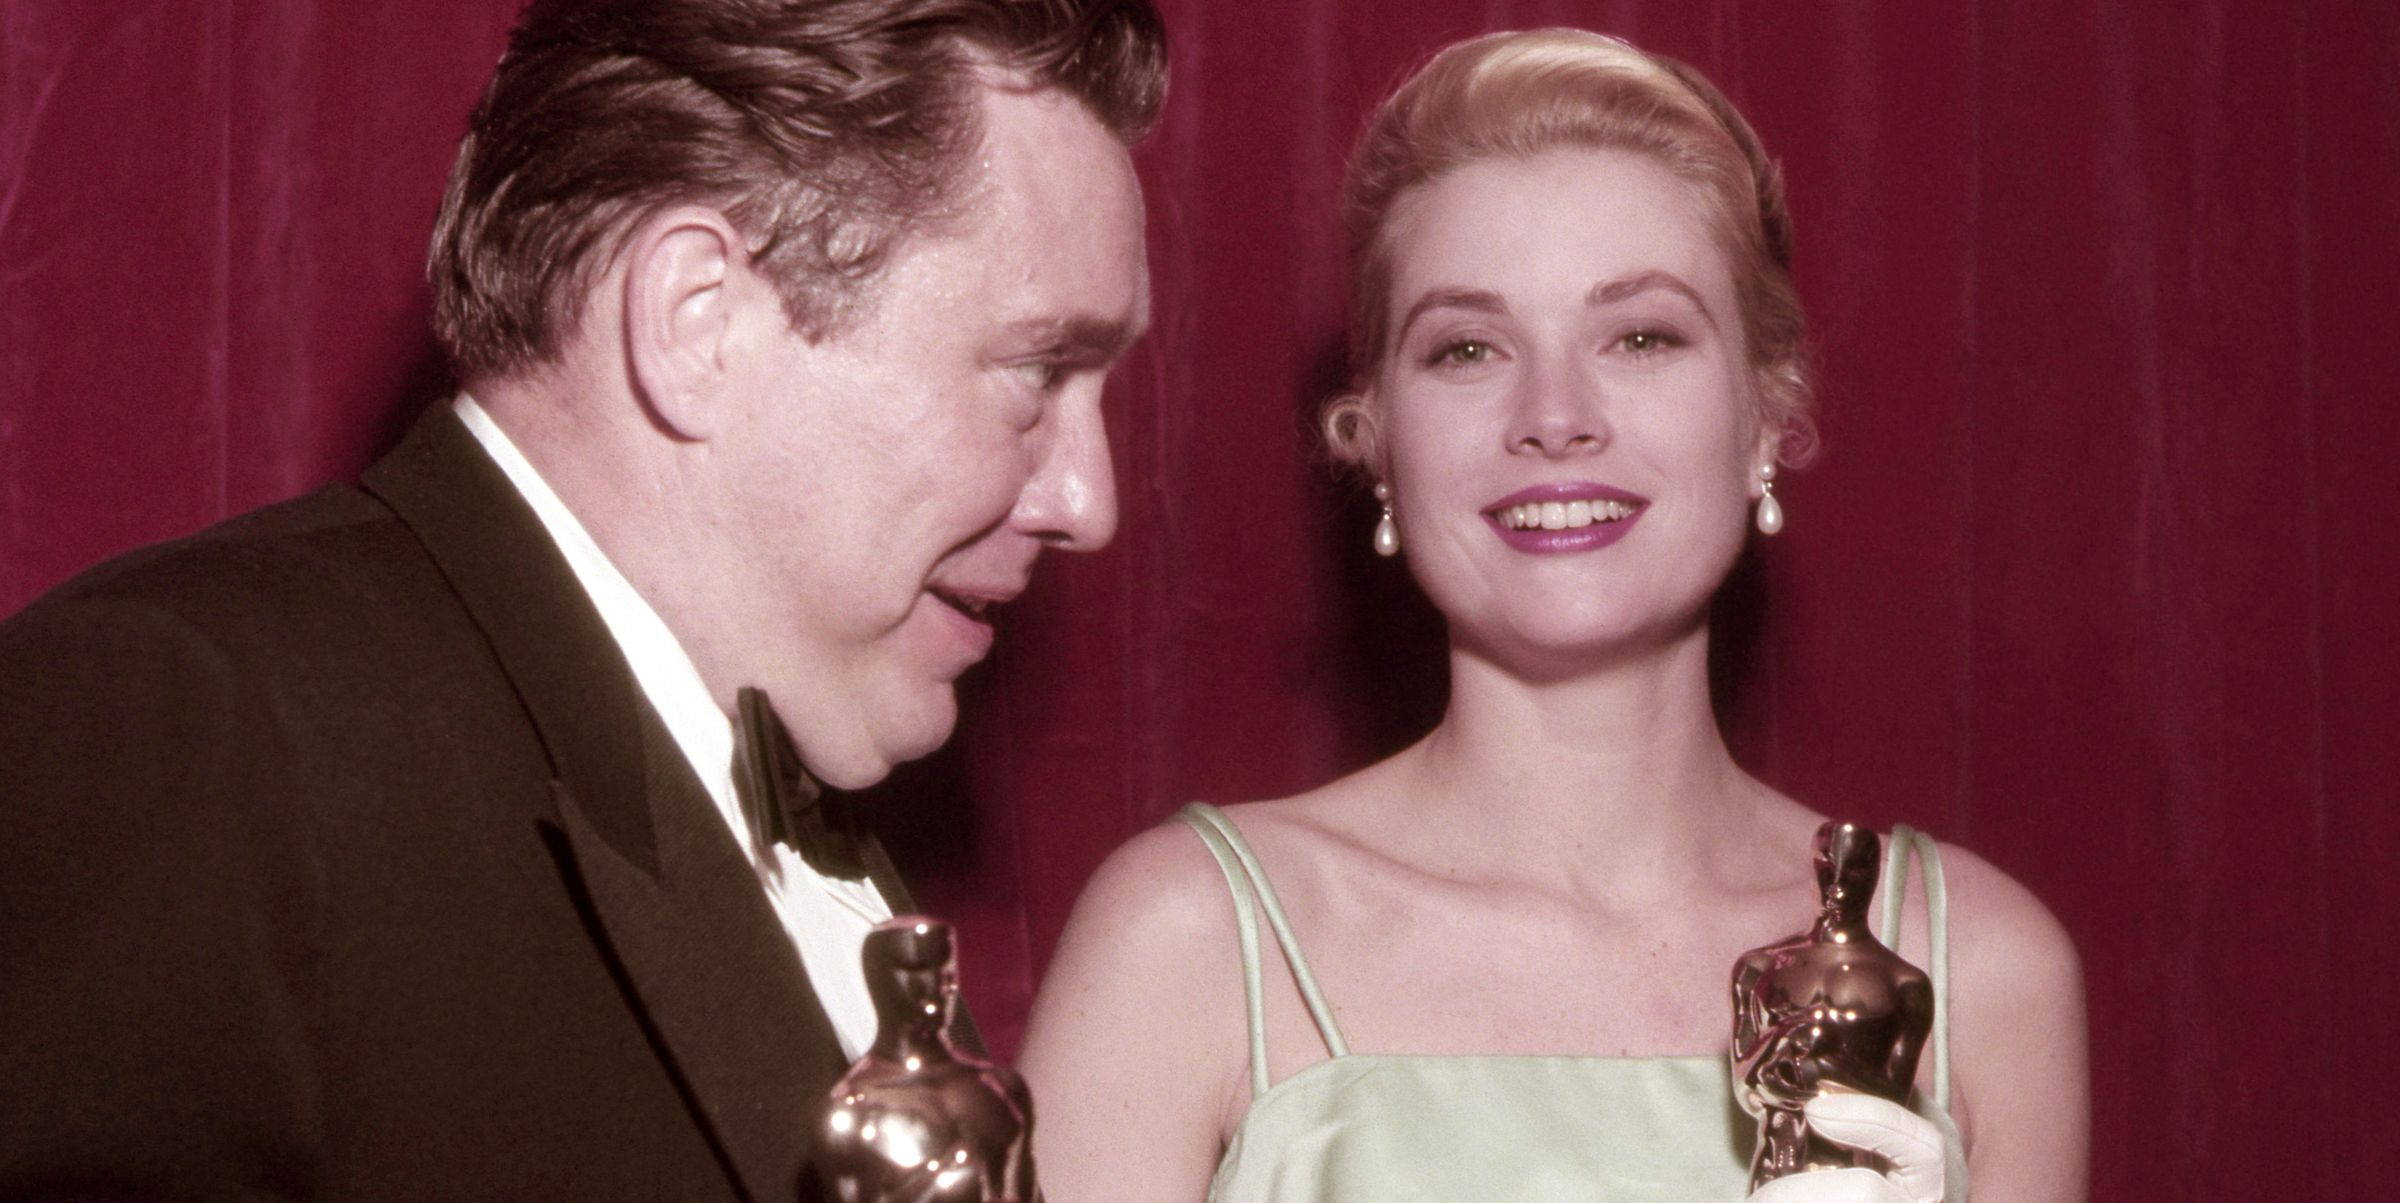 The Most Iconic 'Best Actress' Oscar Winner Dresses Of All Time